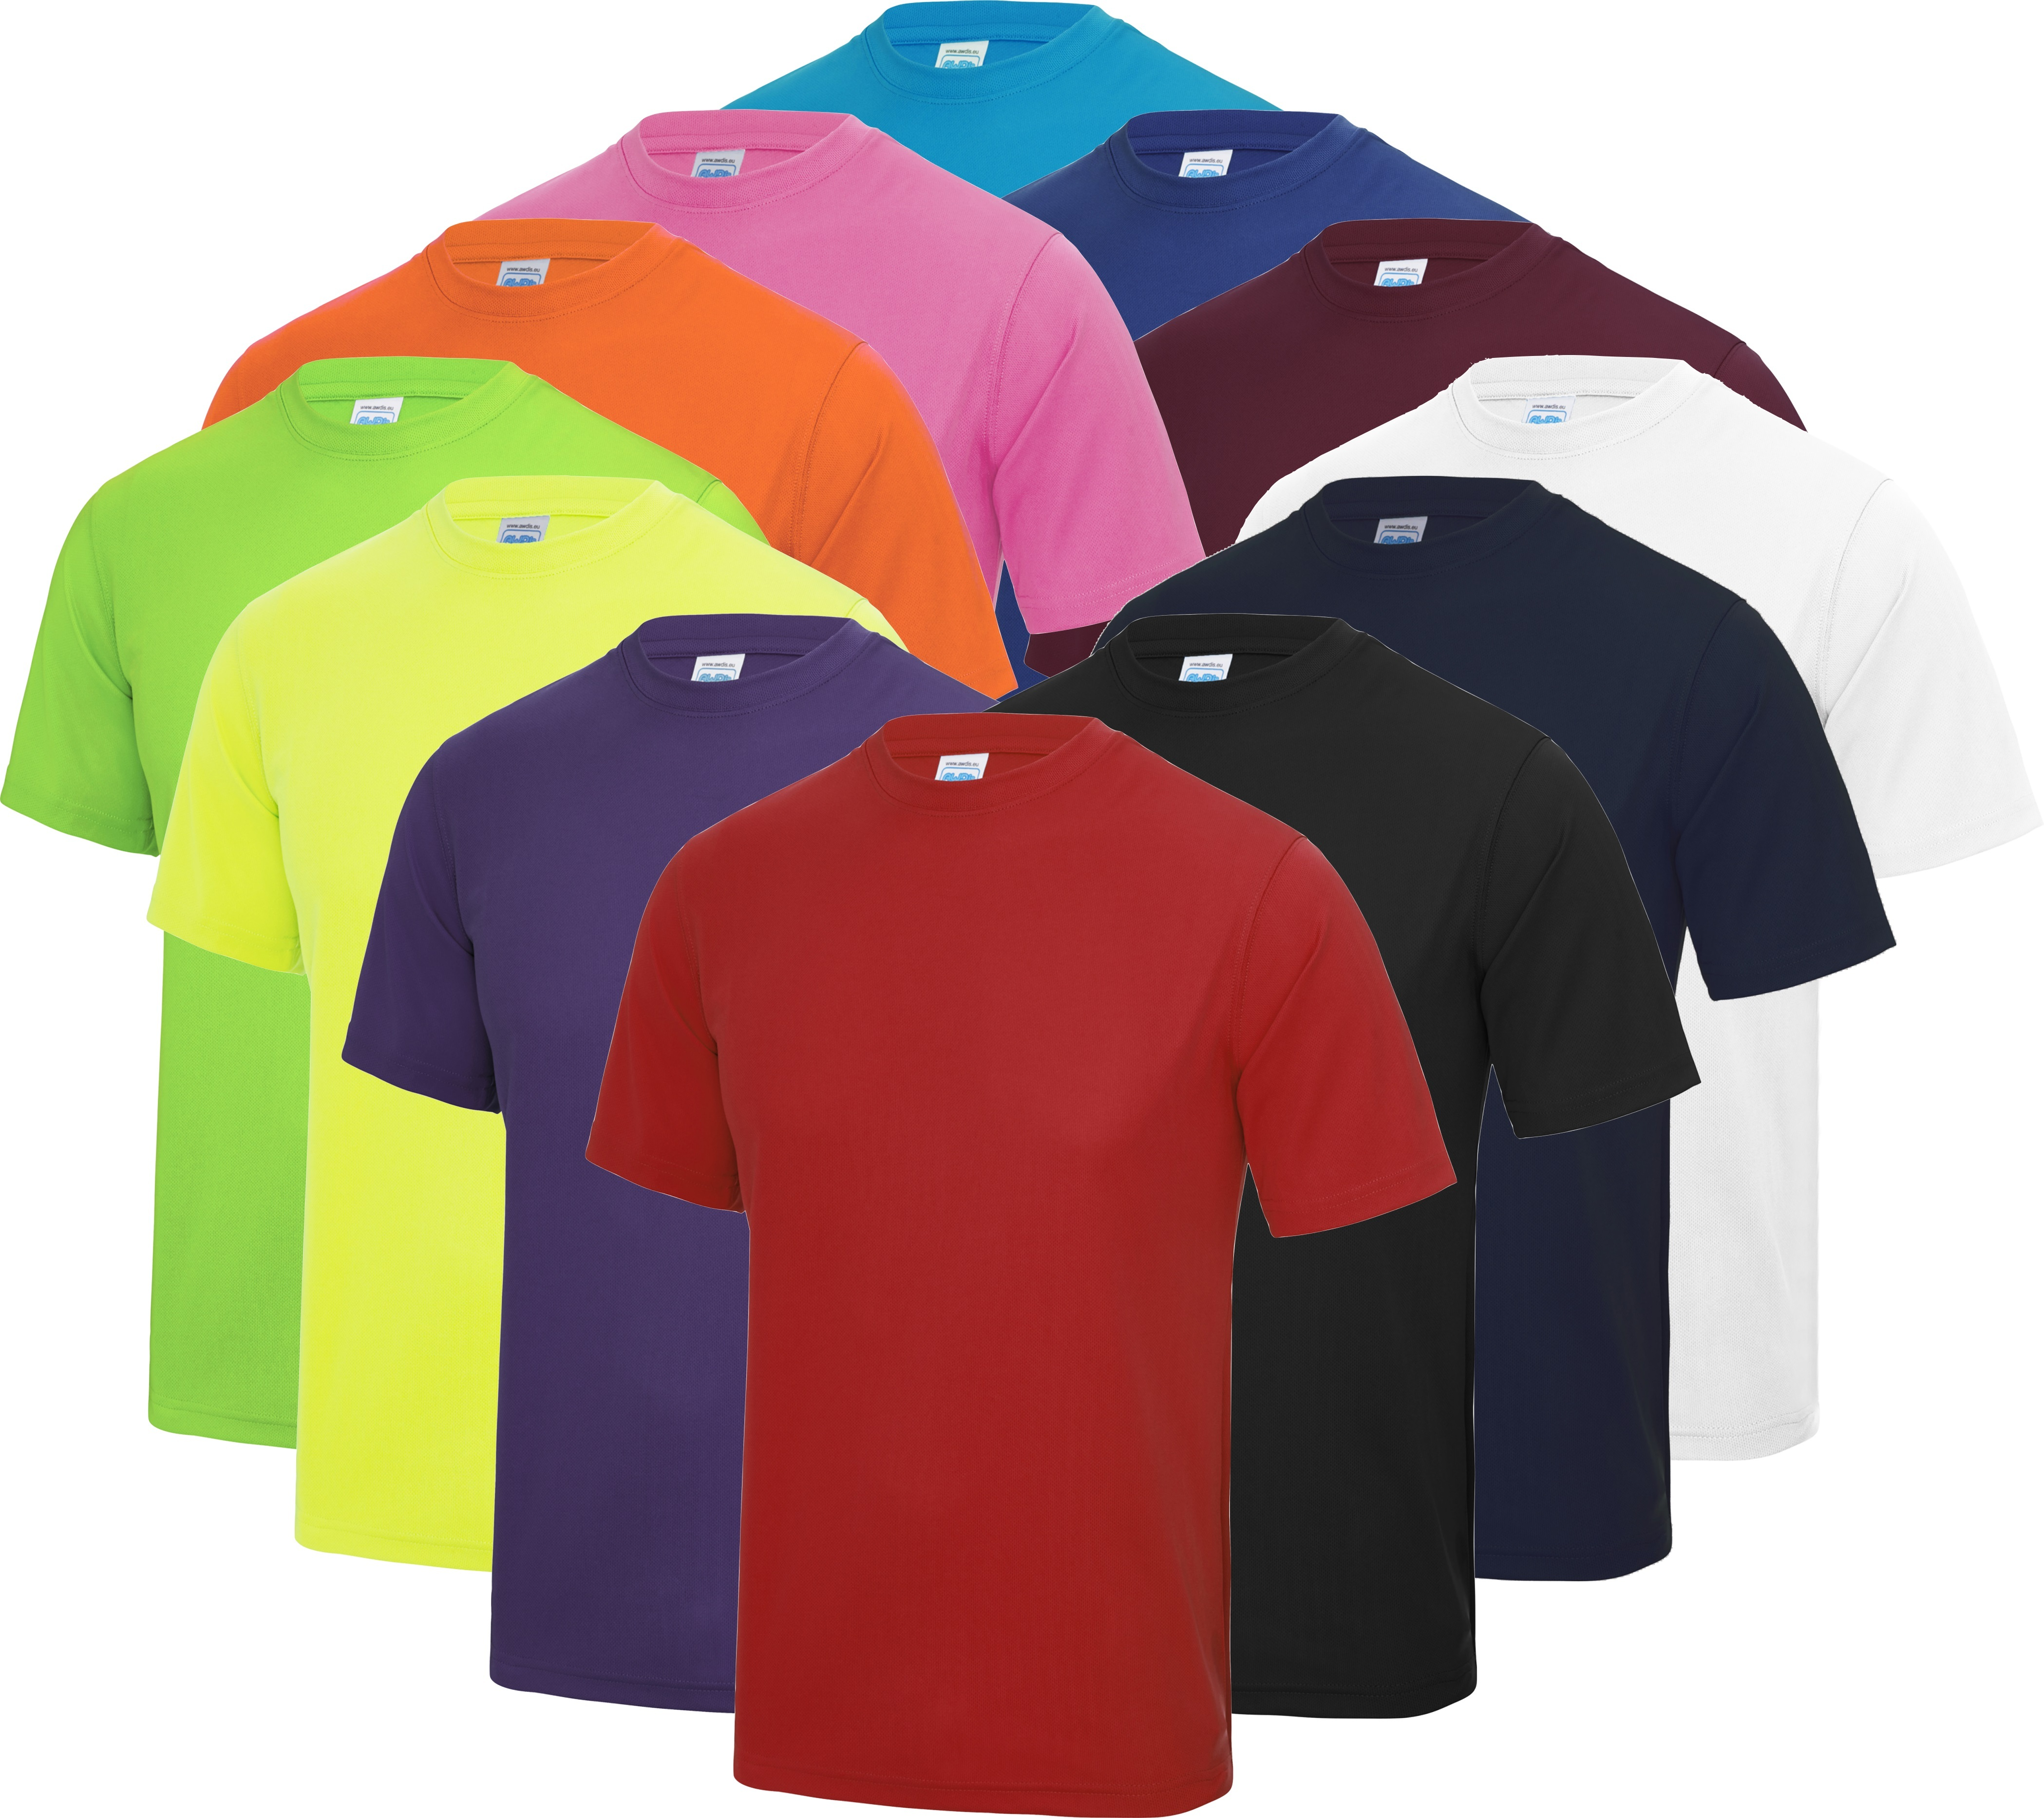 Men's Tech T-Shirts